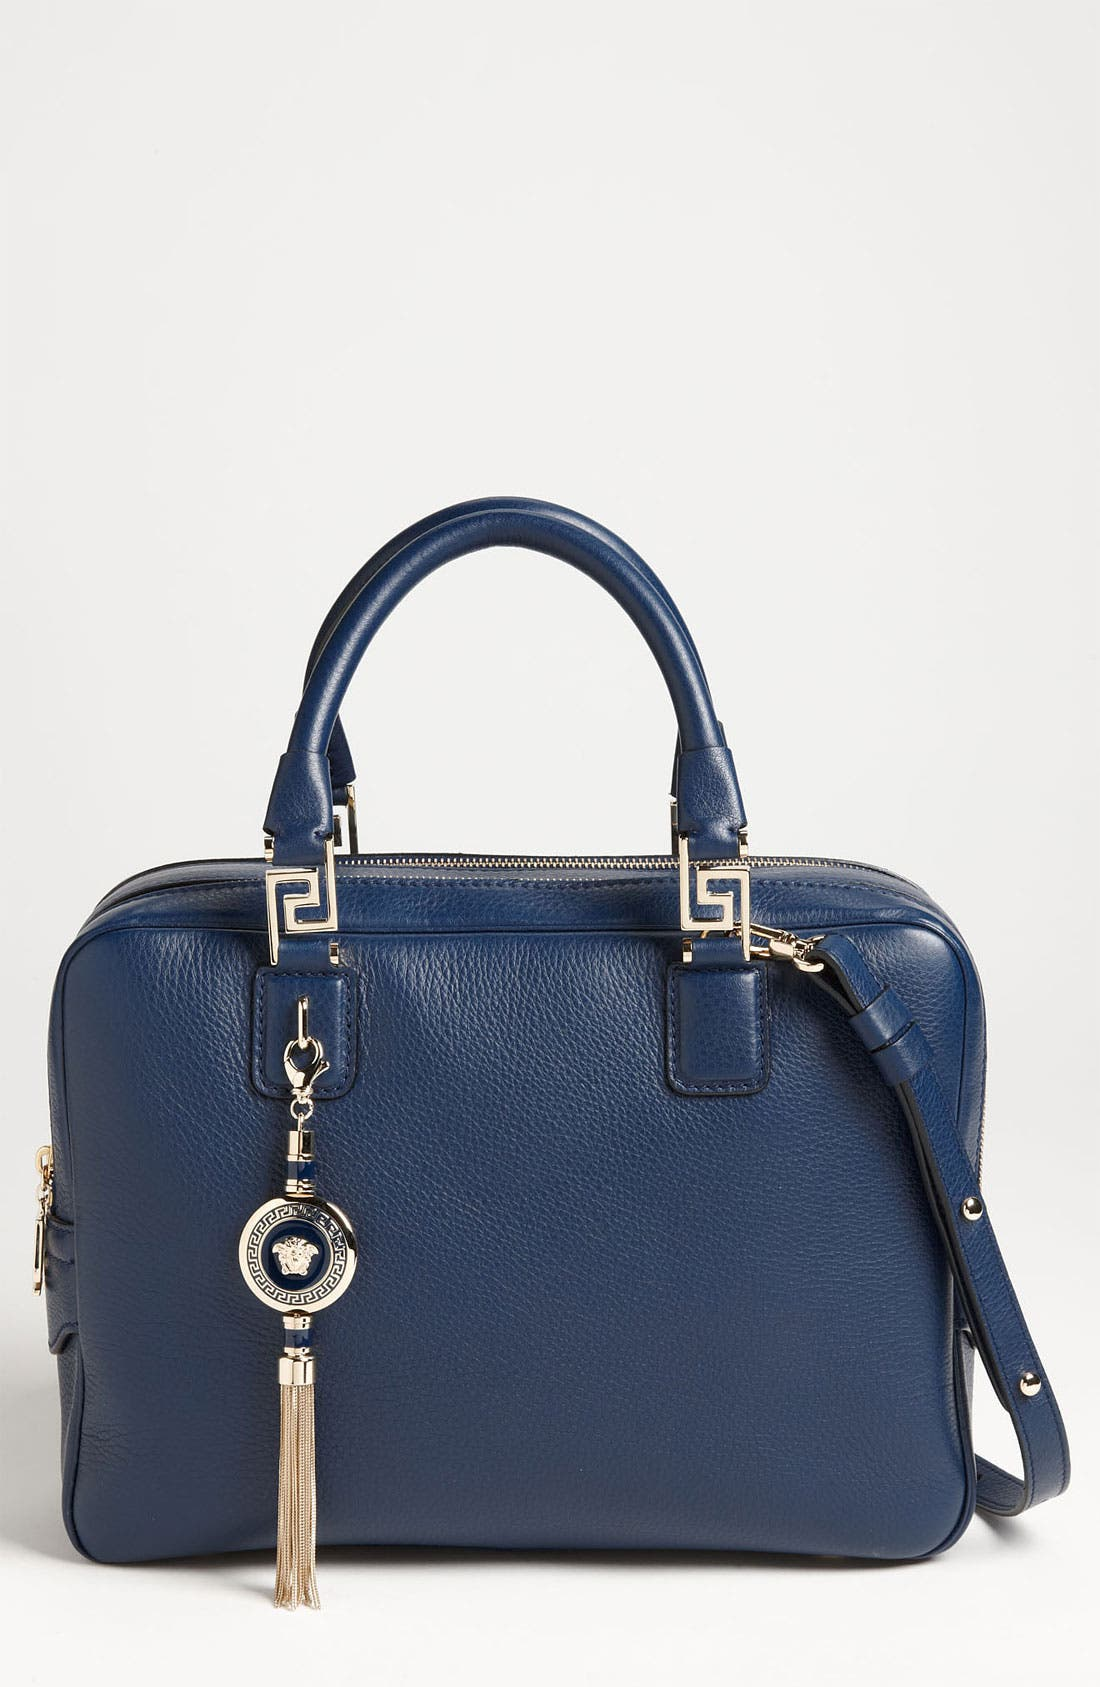 Alternate Image 1 Selected - Versace Structured Leather Satchel